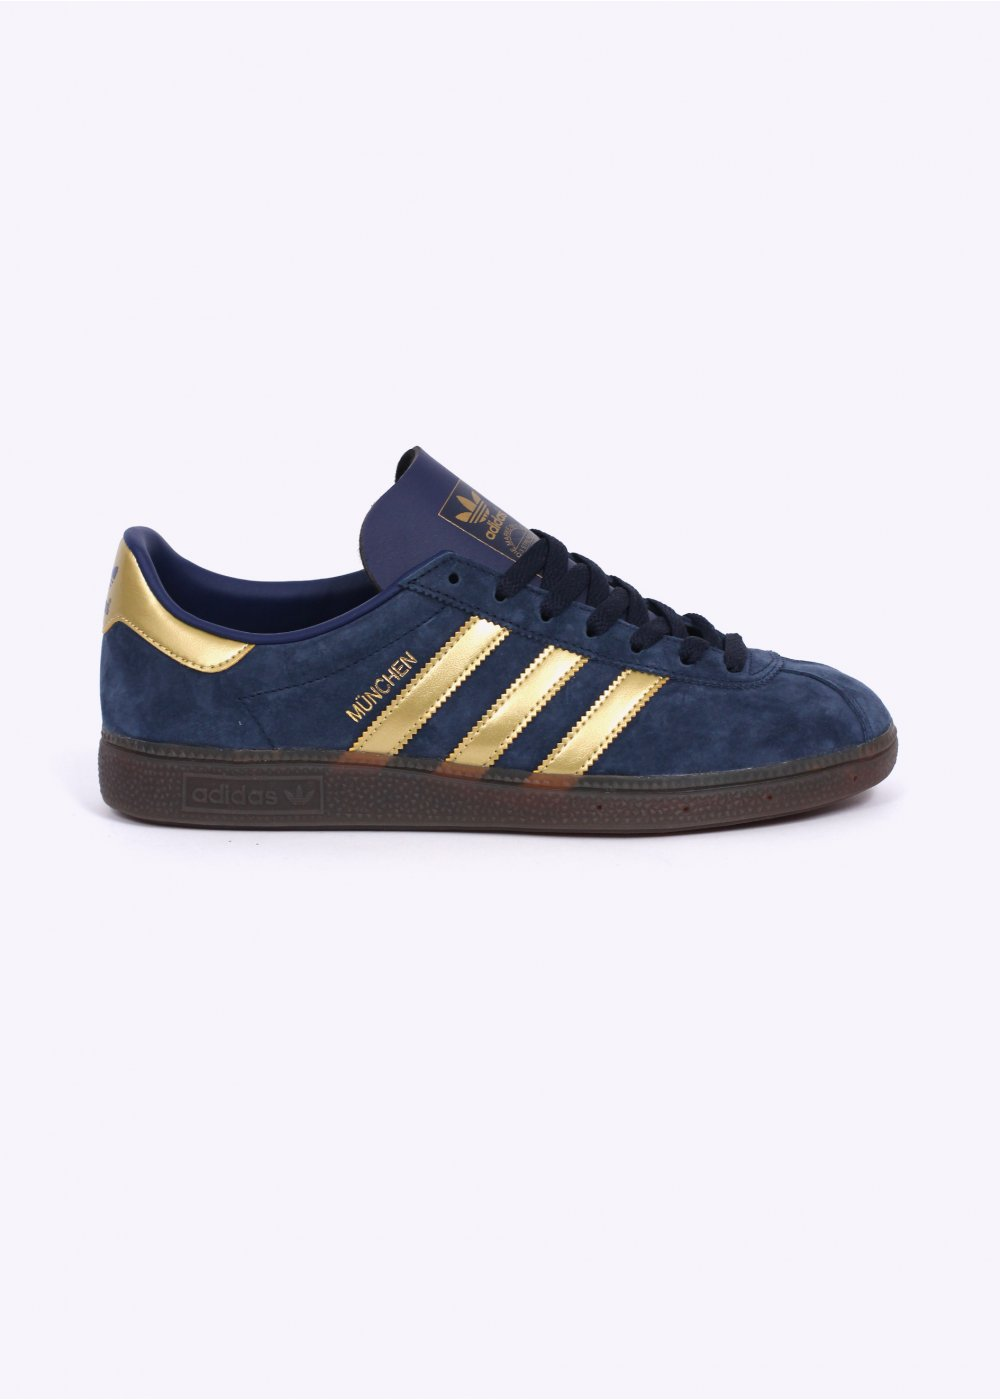 adidas Originals Spezial Munchen Trainers Collegiate Navy Gold